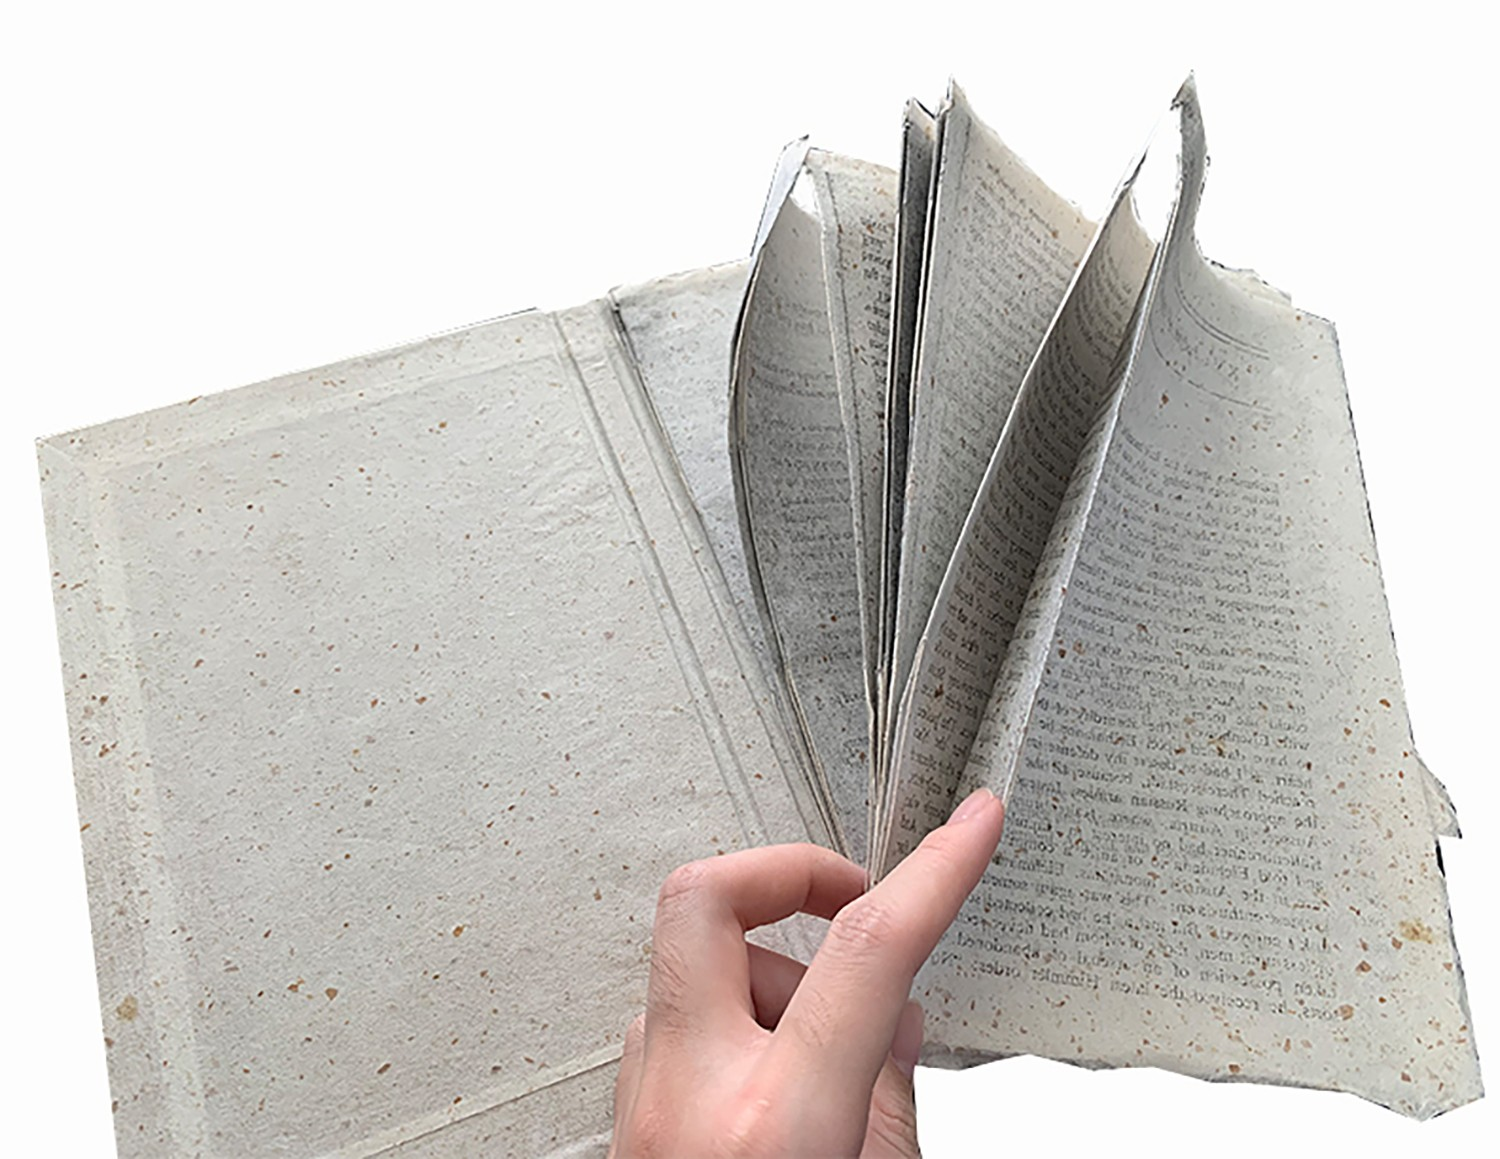 """""""The Book of Nonsense"""" showcases the fragility of knowledge and rationality. The words on the pages are manipulated in a way that the text is reversed, blurry, and overlapping-- unreadable. The paper for the pages is made from bread, which turns the perma"""